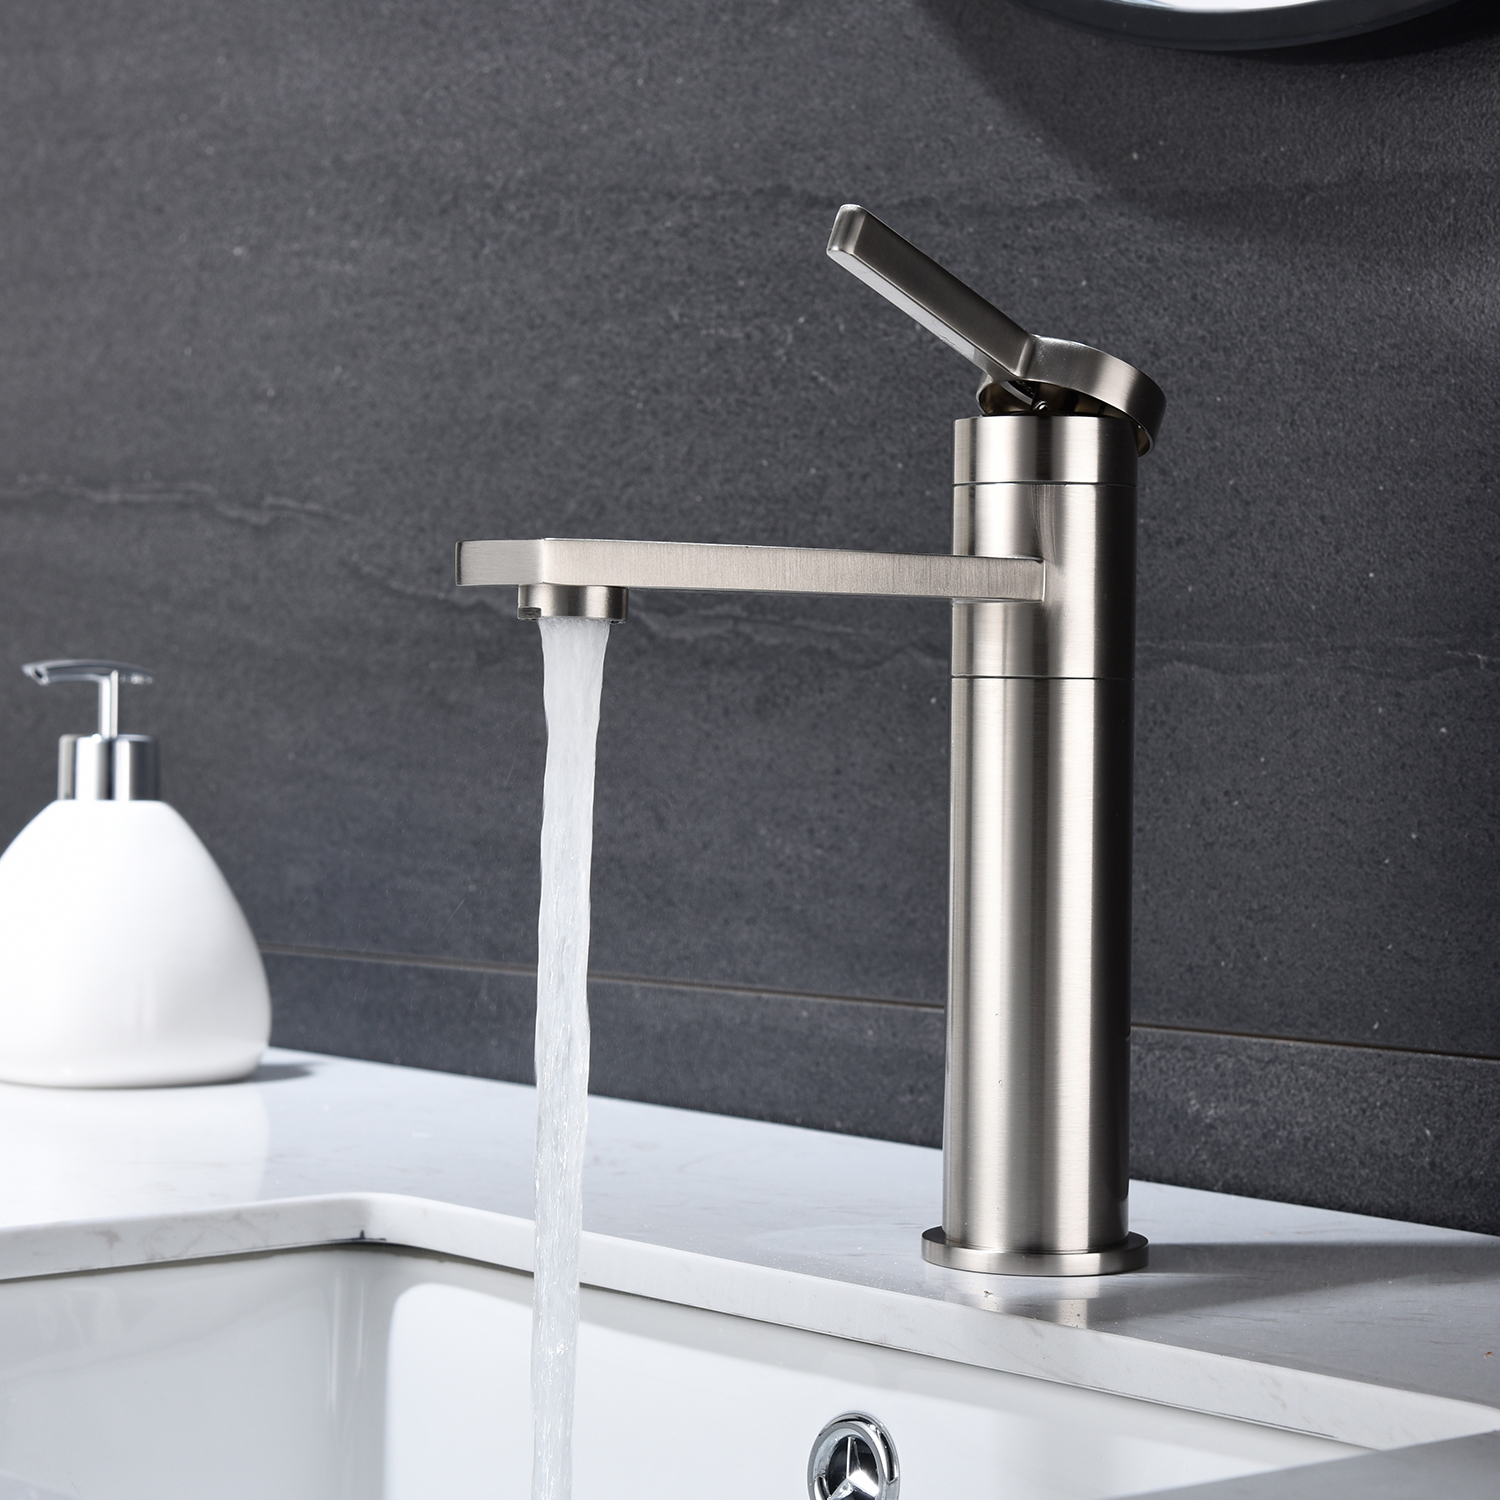 sink faucet brushed nickel single handle bathroom faucet tall bath lavatory vanity faucets with solid stainless steel body